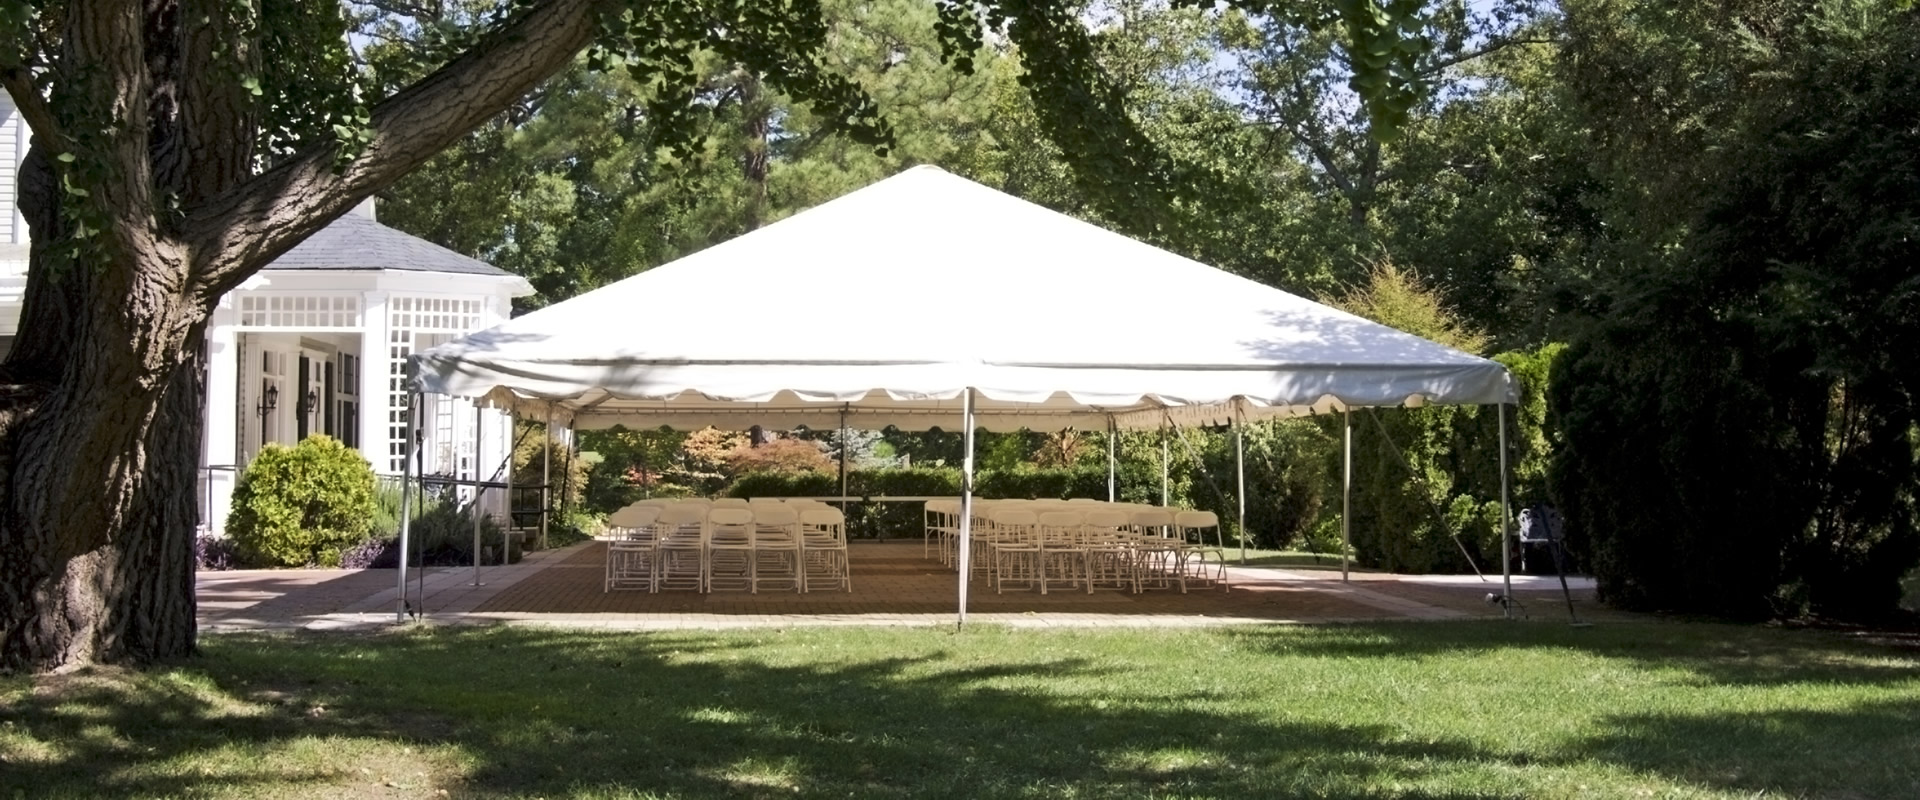 corp-tent